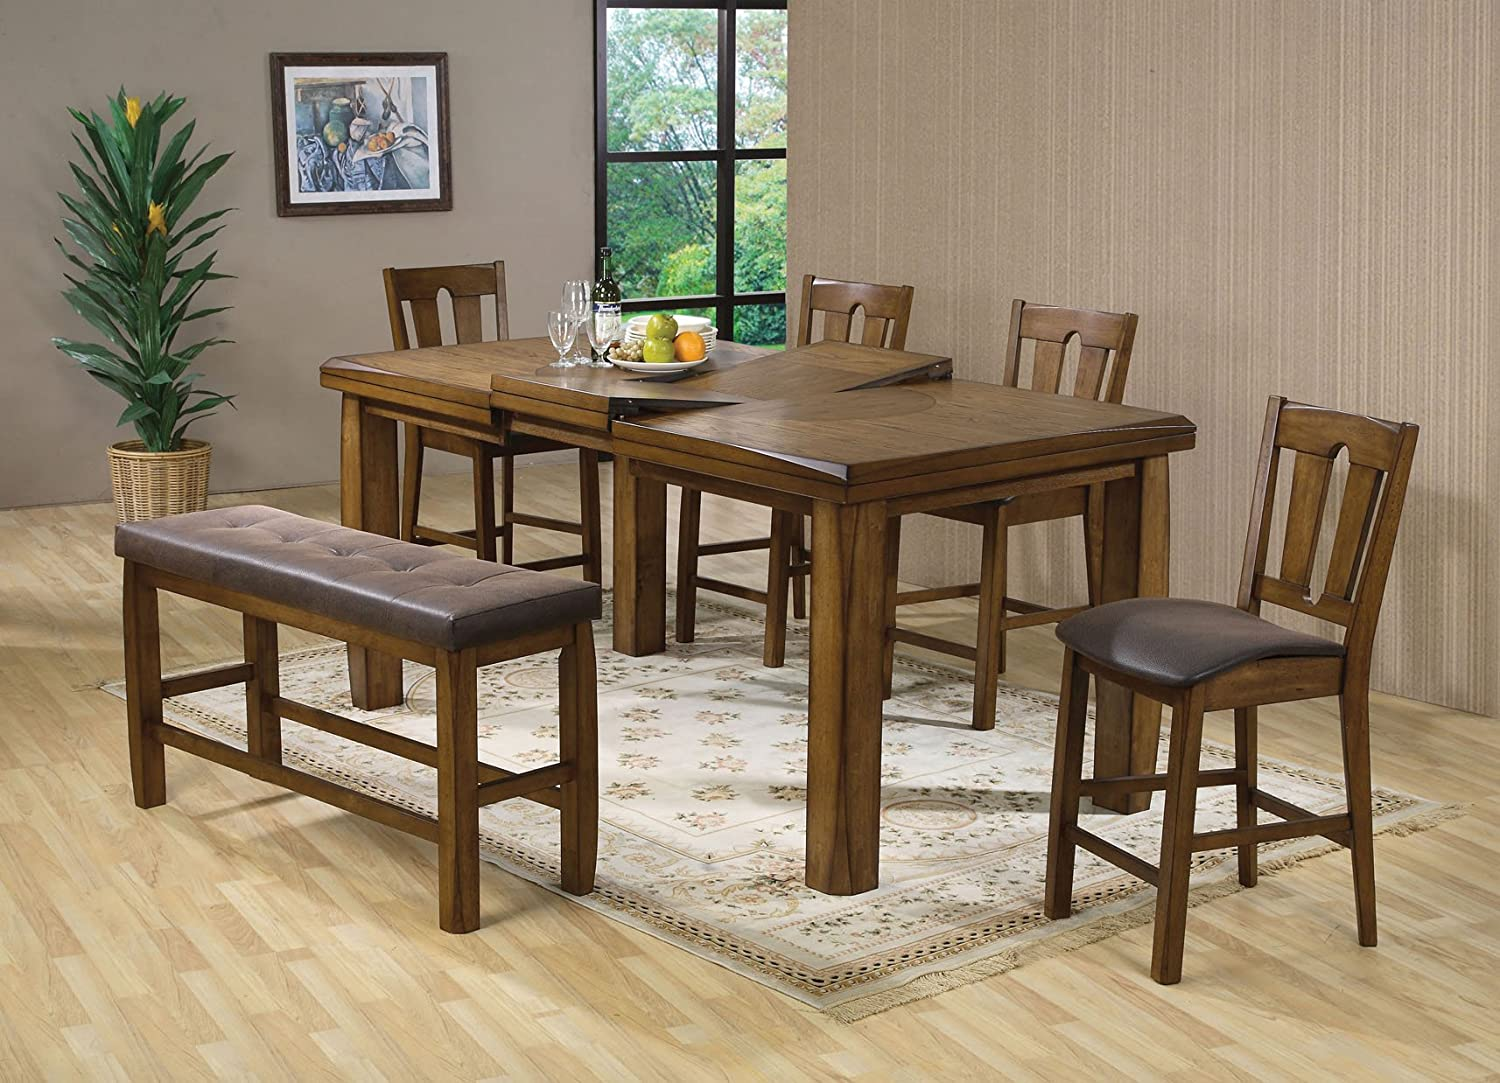 Amazon.com   Acme 00845 Morrison Counter Height Table, Oak Finish   Tables